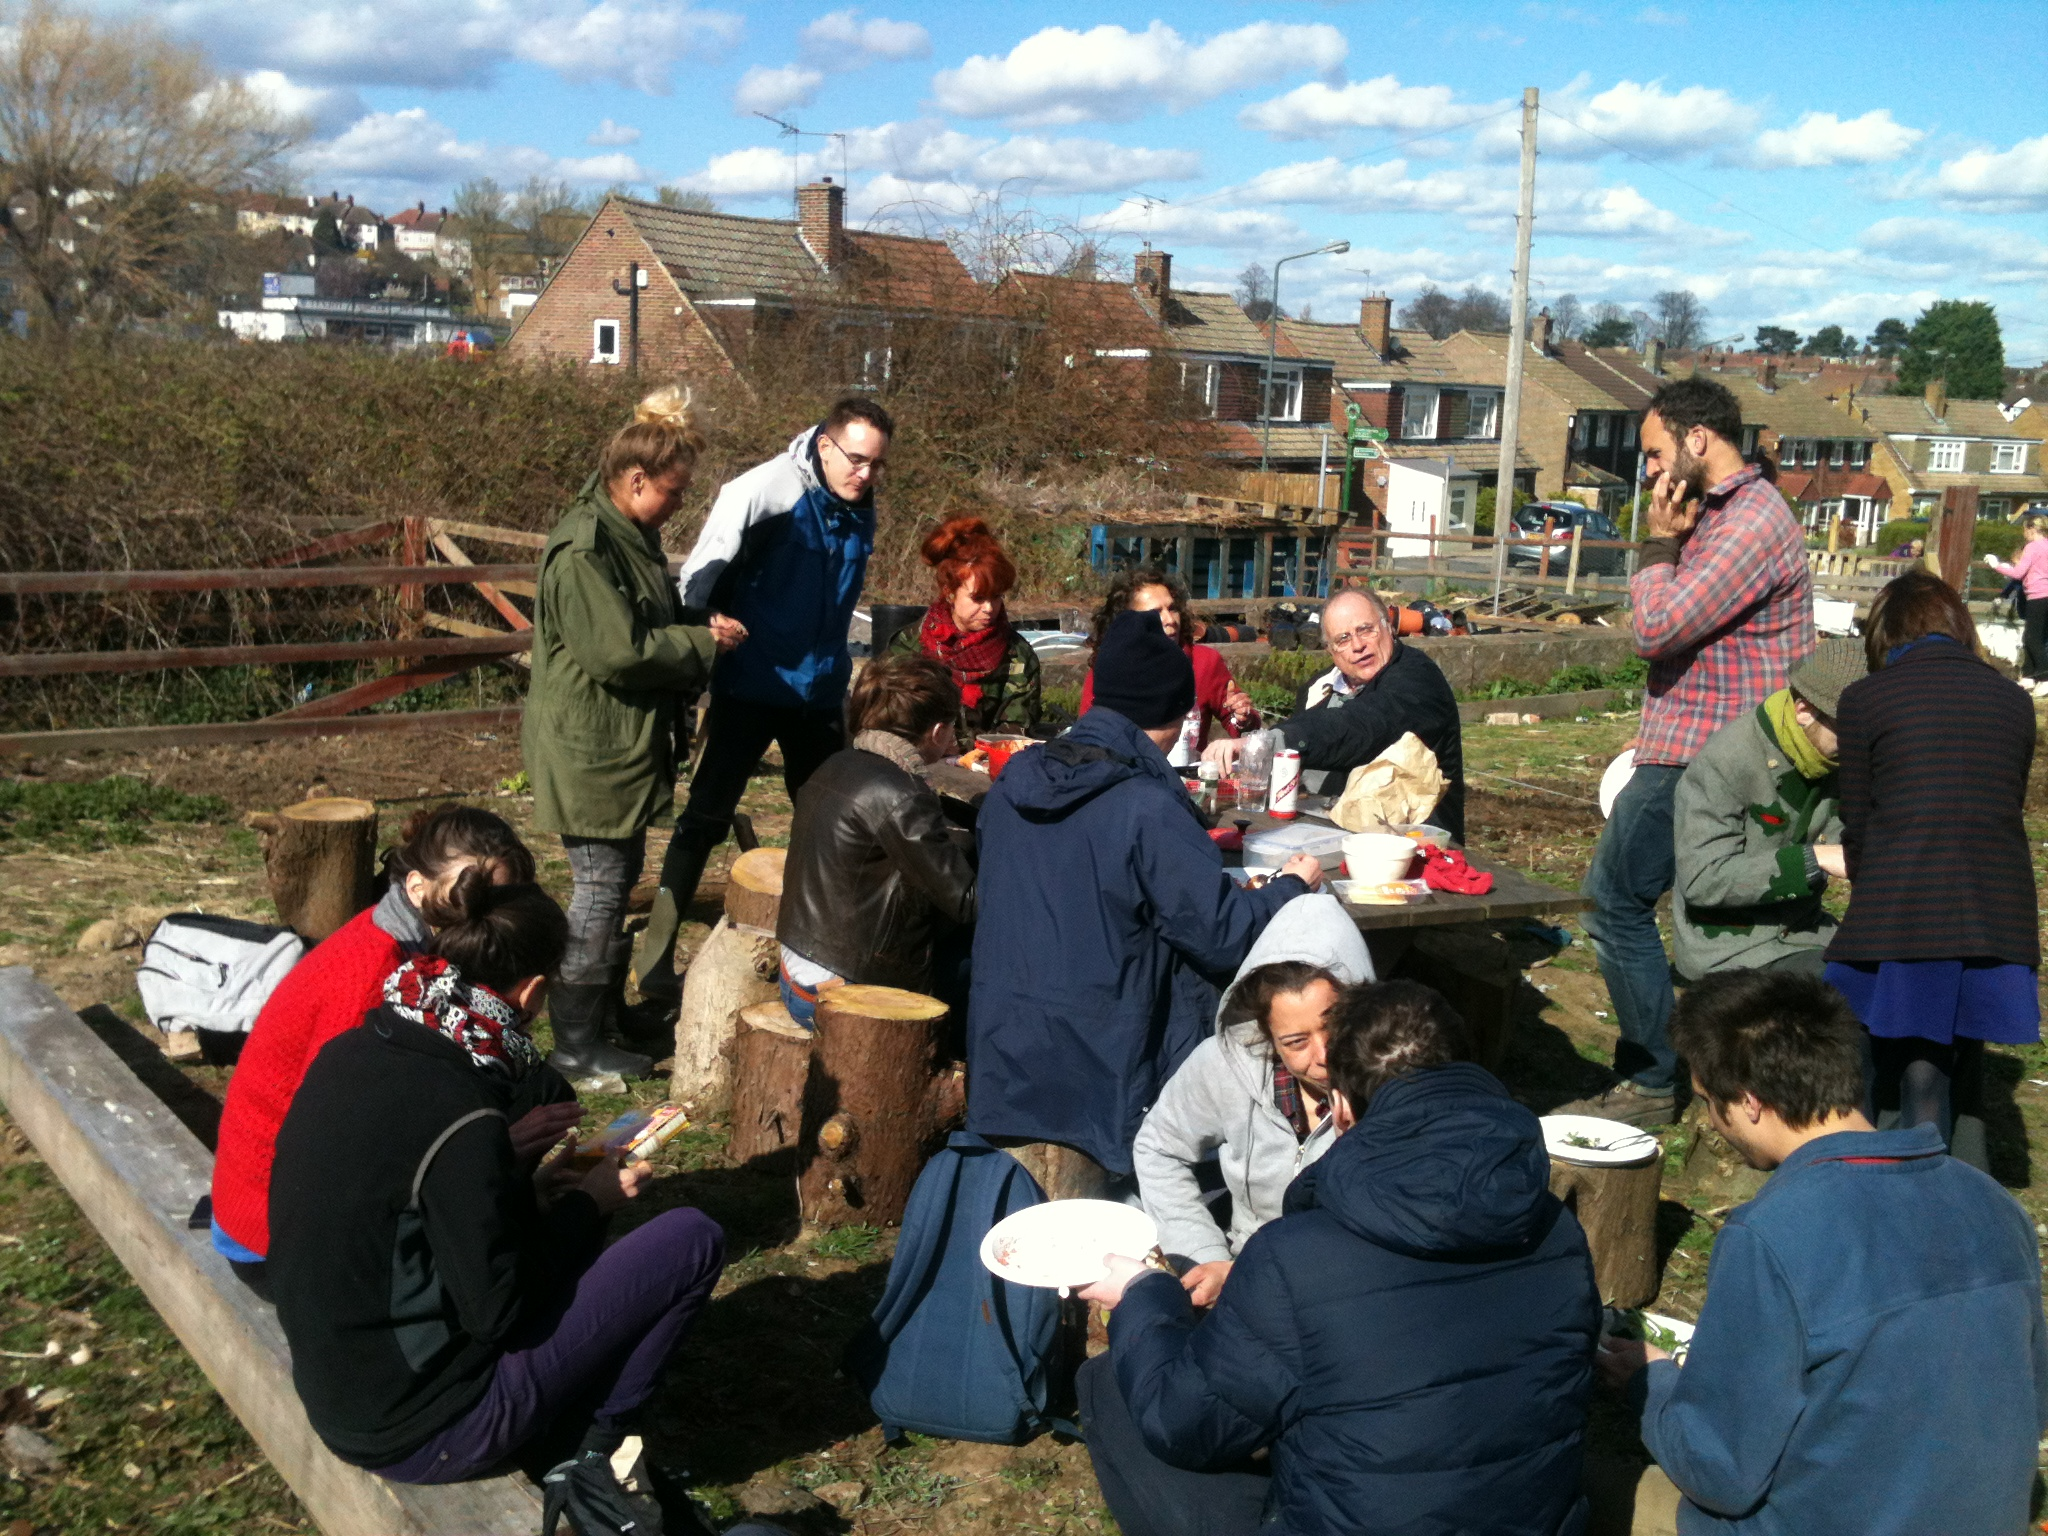 Sharing lunch on the Big Dig Day